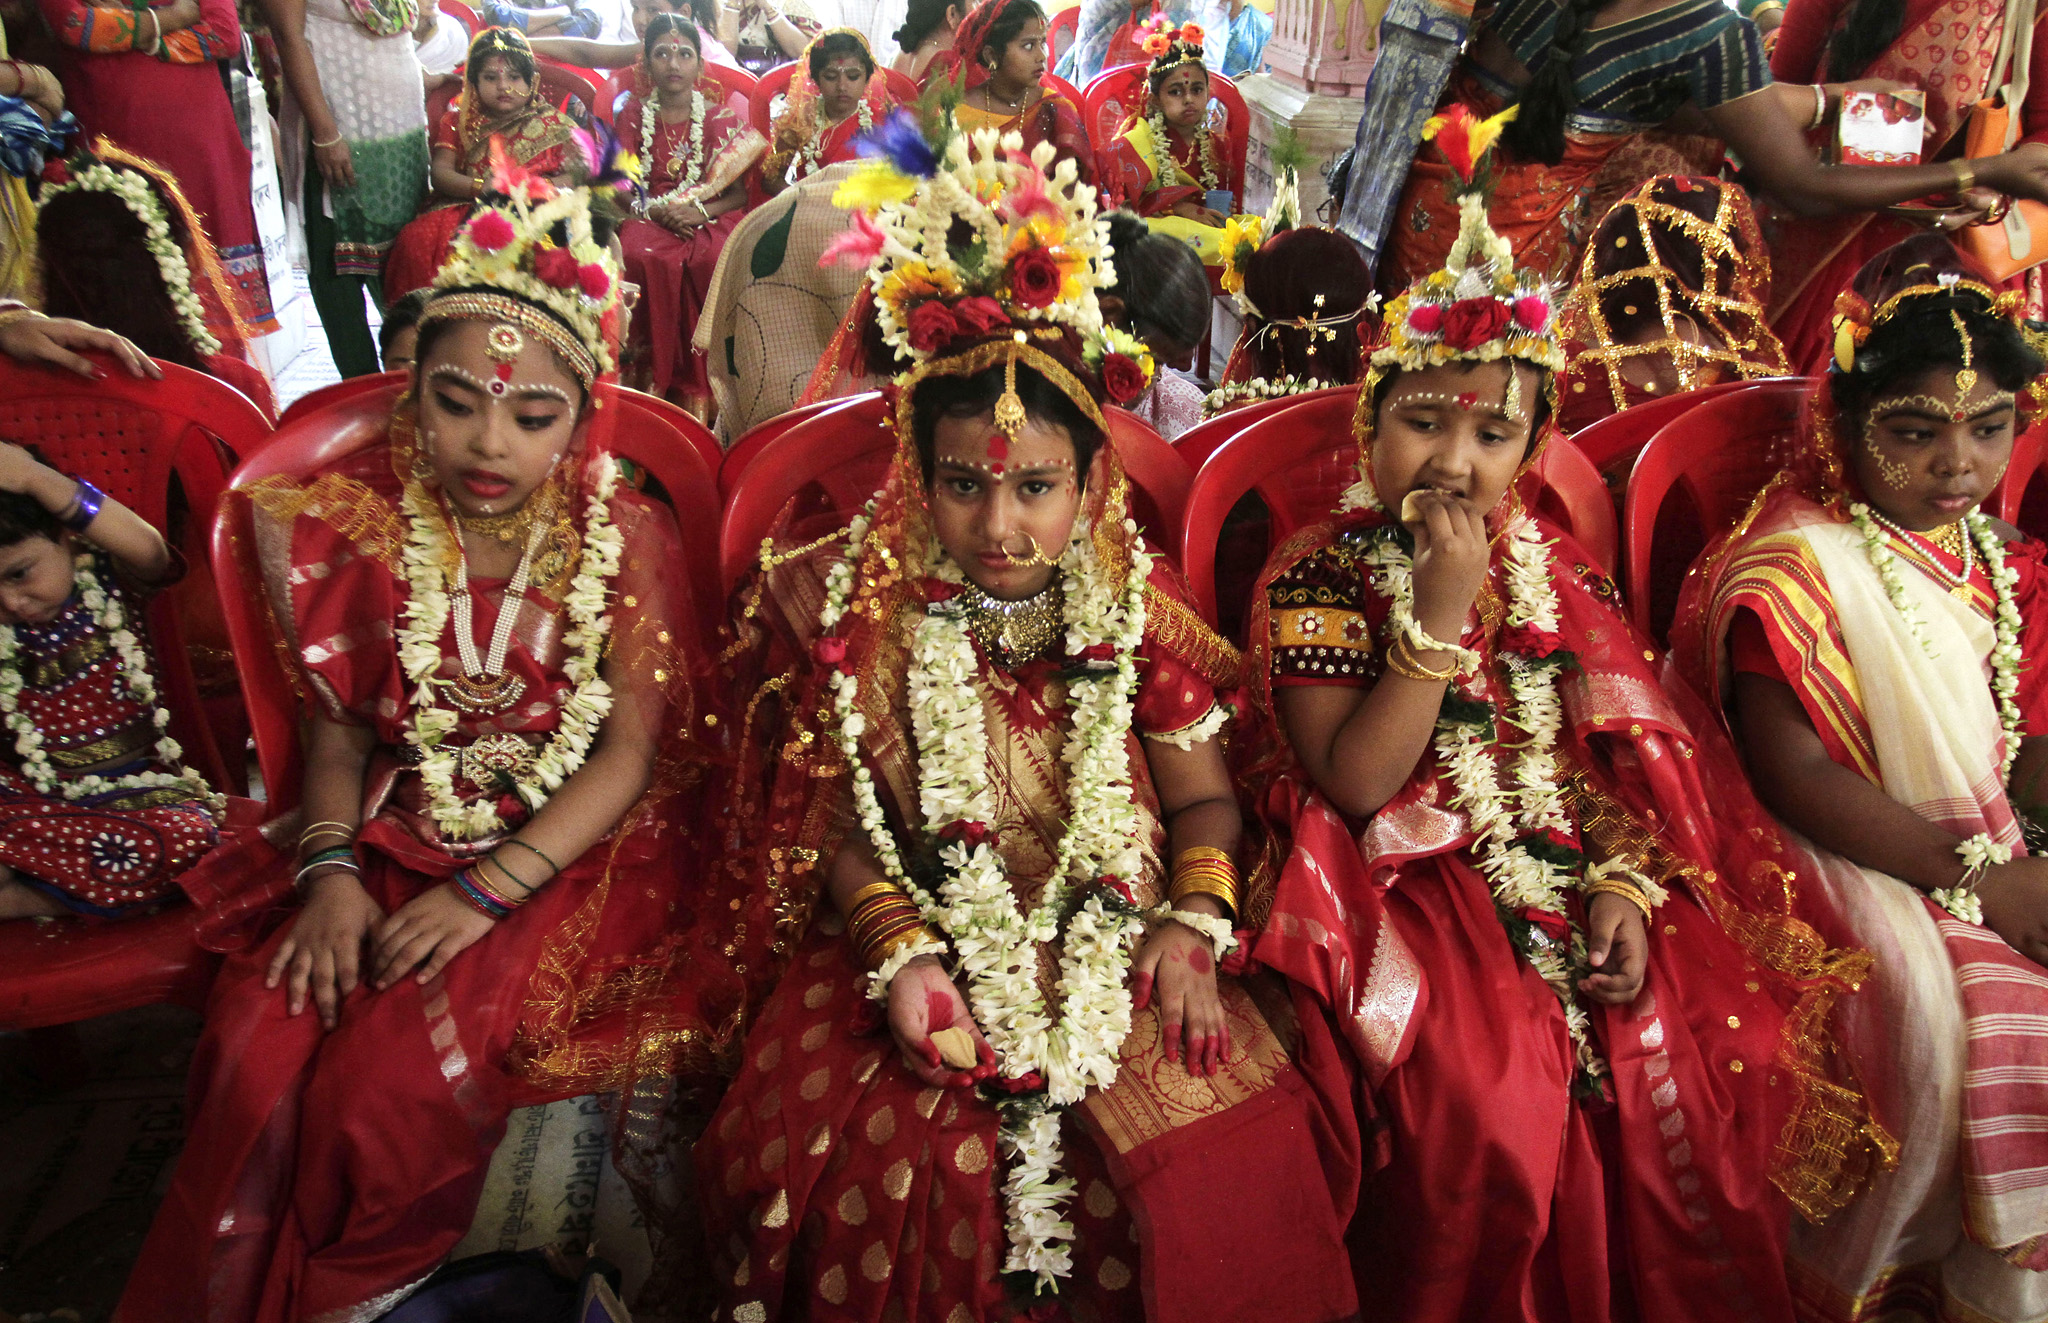 Young girls yet to attain puberty are dressed up as living goddesses before being worshipped as 'kumari' or virgin during the Bengali Hindu festival of Basanti Durga puja performed in the spring in Kolkata, India, Friday, April 15, 2016. Worshipping kumaris or virgins on the ninth day or navami of the festival is an important ritual when they are worshipped as the base power of all creation. The more popular form of Durga festival is performed in autumn when the Hindu mythical figure Rama is said to have called upon goddess Durga to seek her blessings to defeat the evil character Ravana. (AP Photo/ Bikas Das)